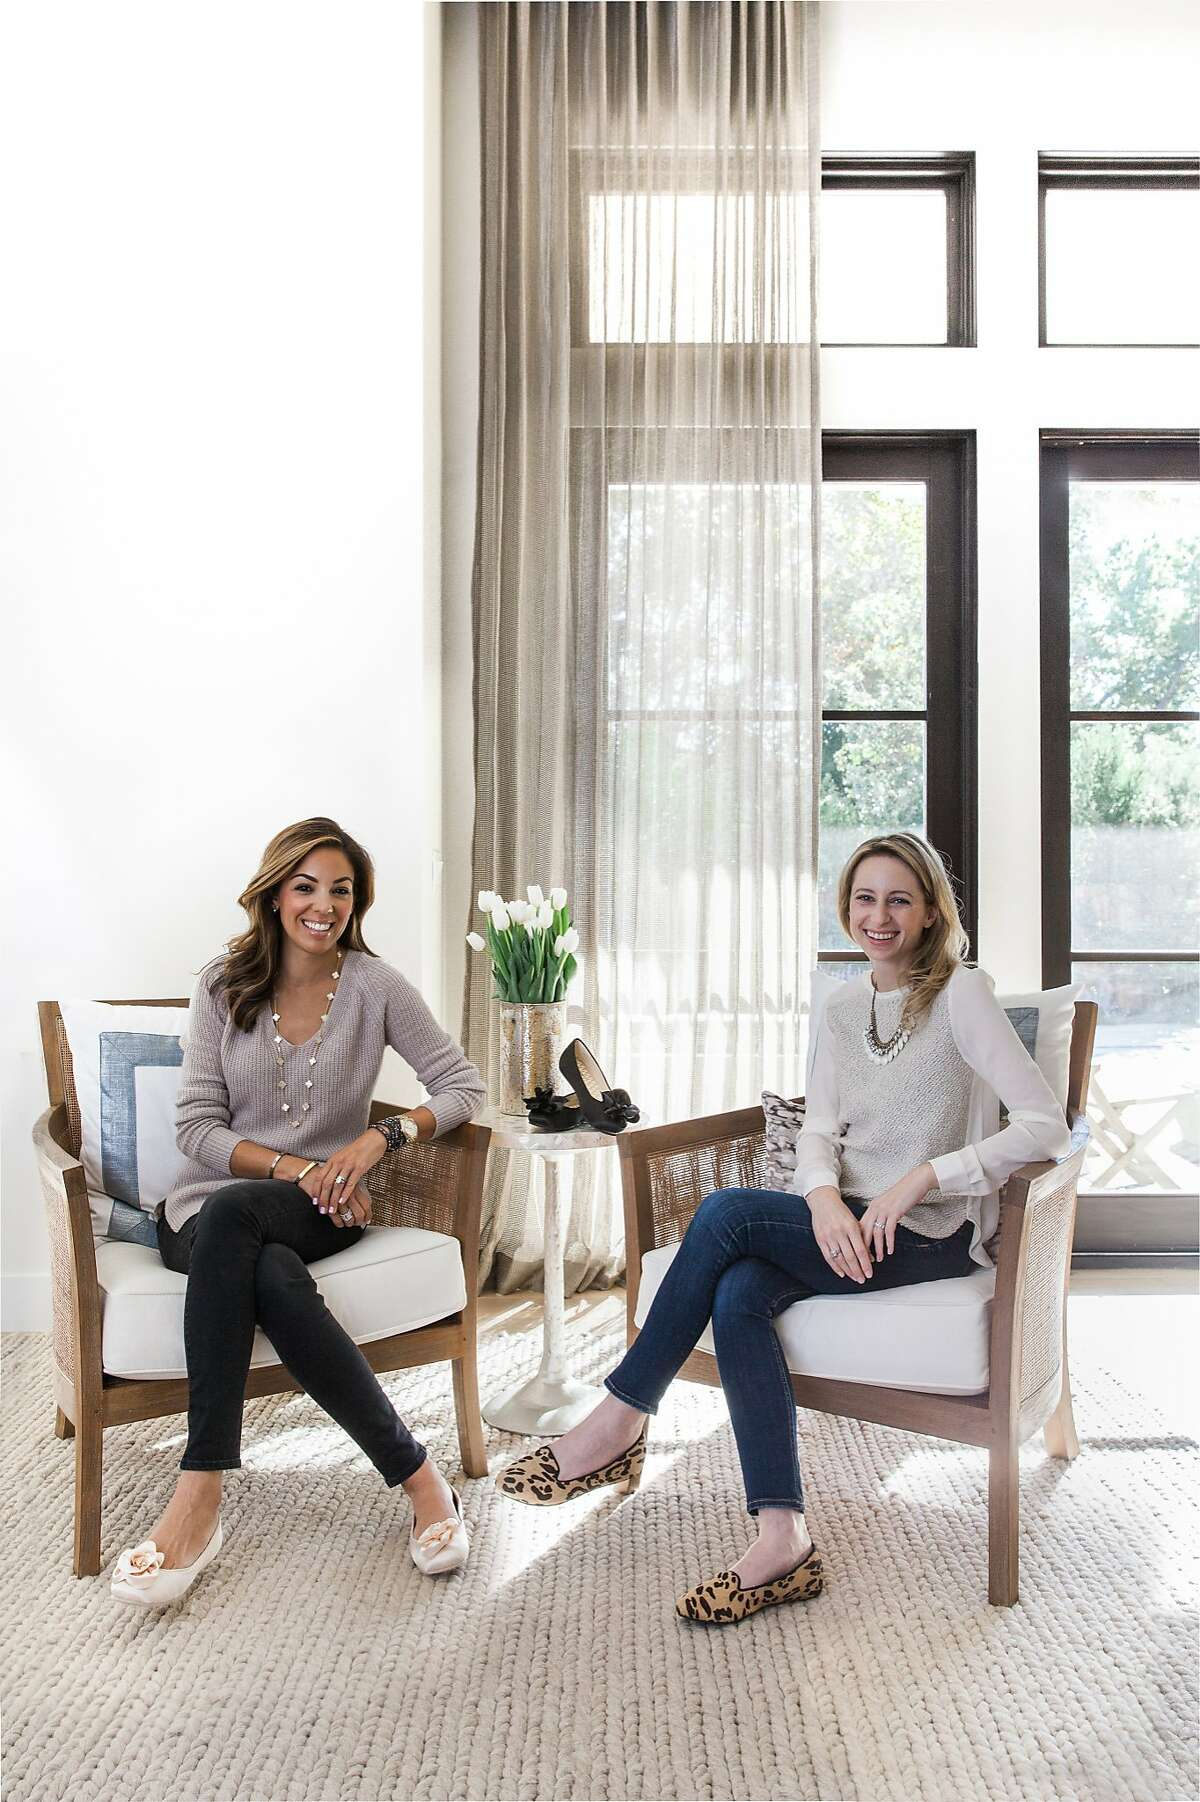 Bianca Gates (left) and Marisa Sharkey are the co-founders of Birdies, a fashionable and luxurious shoe designed for the indoors.